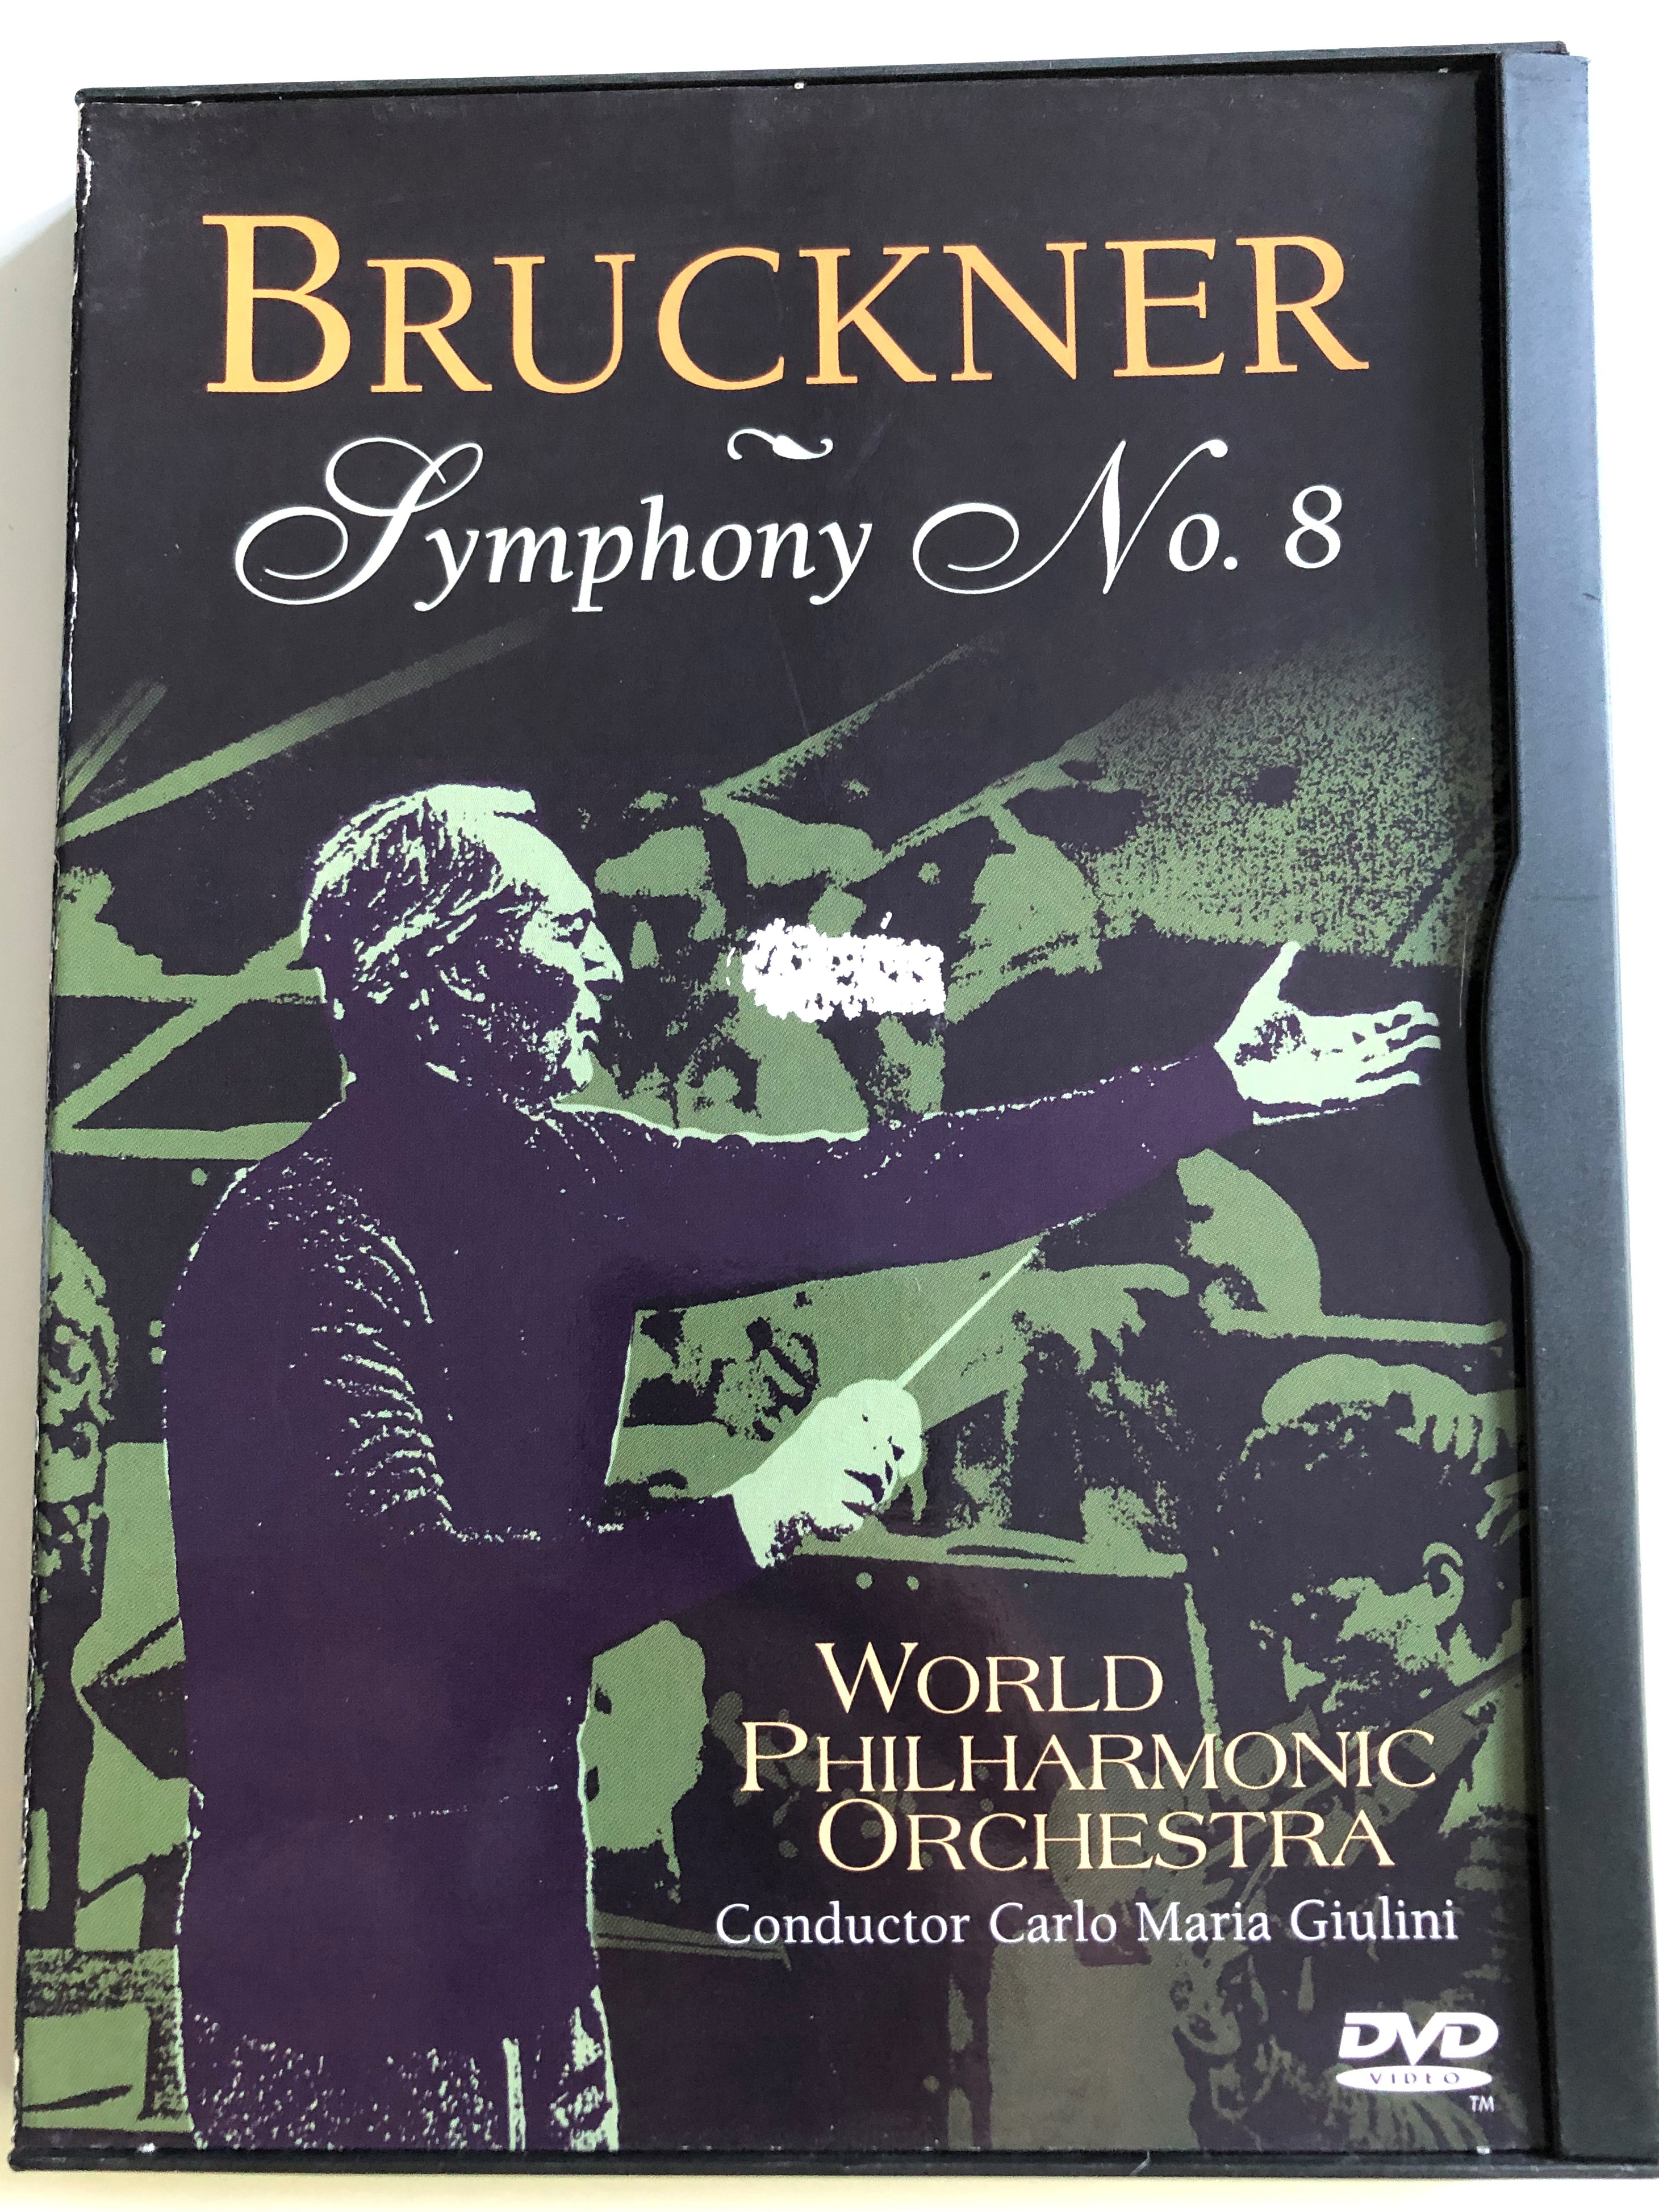 bruckner-symphony-no.-8-dvd-1985-world-philharmonic-orchestra-conductor-carlo-maria-giulini-1-.jpg